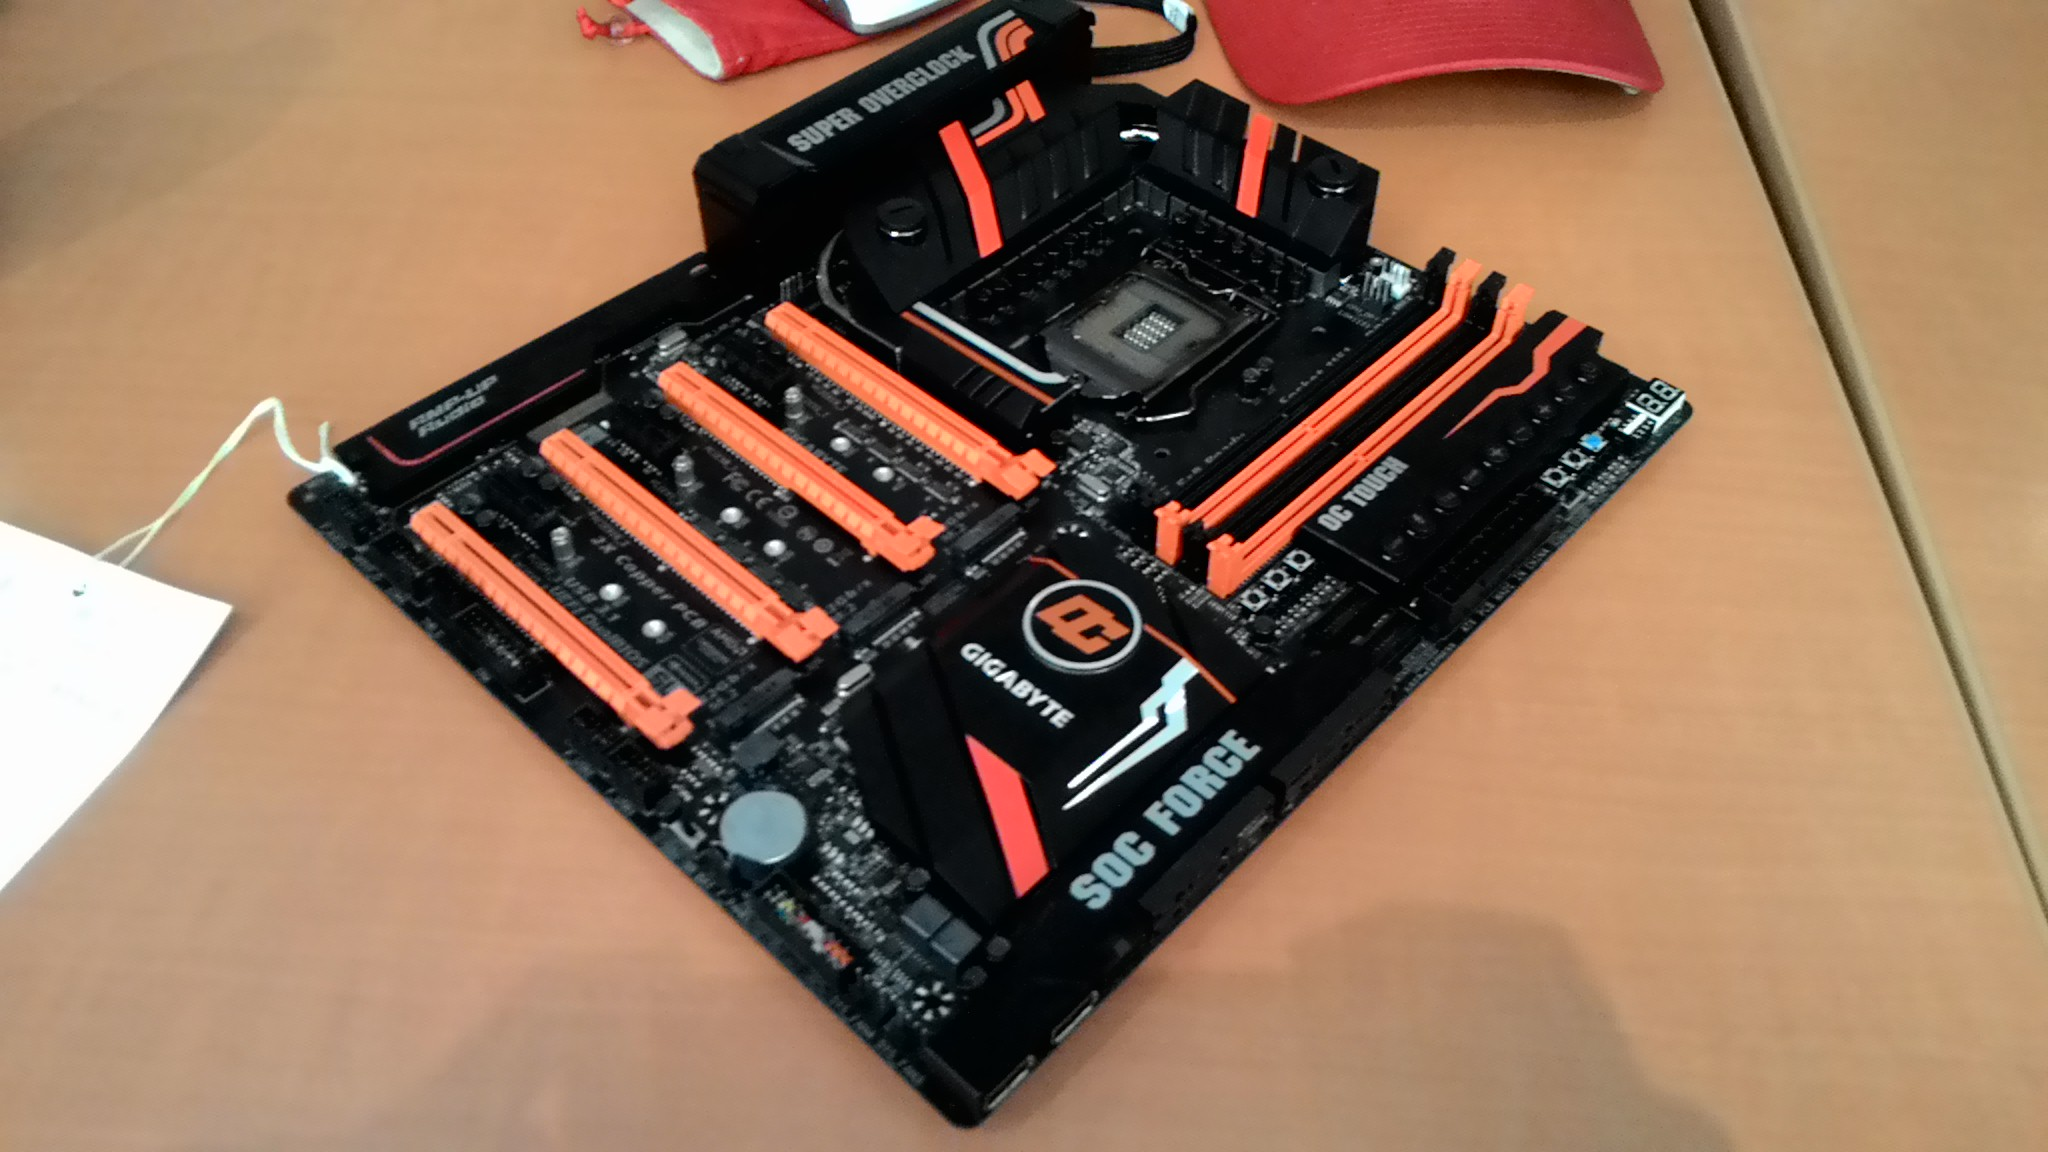 Gigabyte S Impressive Z170x Soc Force Motherboard Unveiled